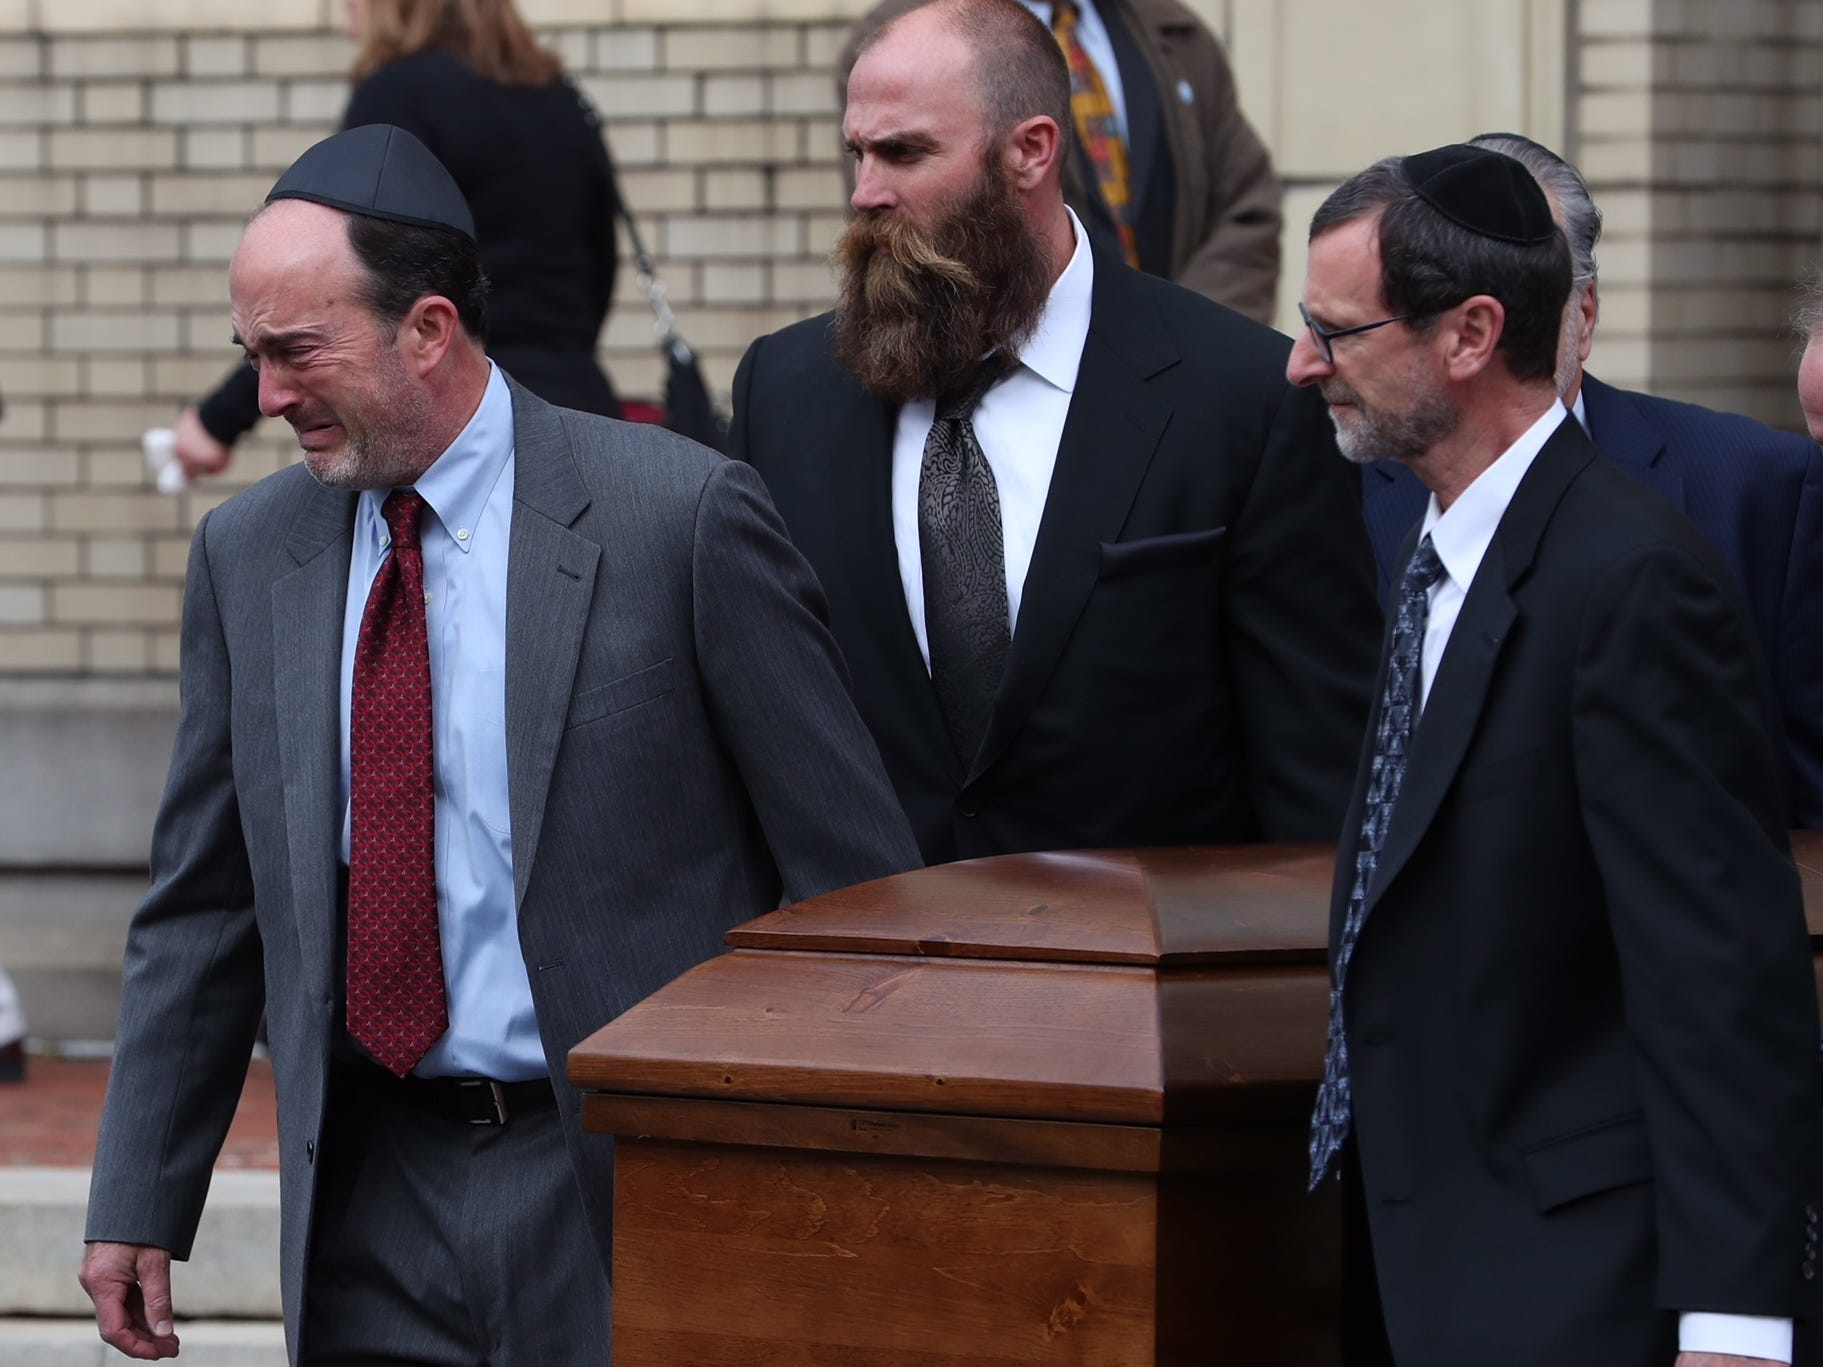 One of the caskets for brothers David and Cecil Rosenthal is carried out of the synagogue at the conclusion of funeral services at the Rodef Shalom Congregation in Pittsburgh, Pa., Tuesday, Oct. 30, 2018.  (Via OlyDrop)